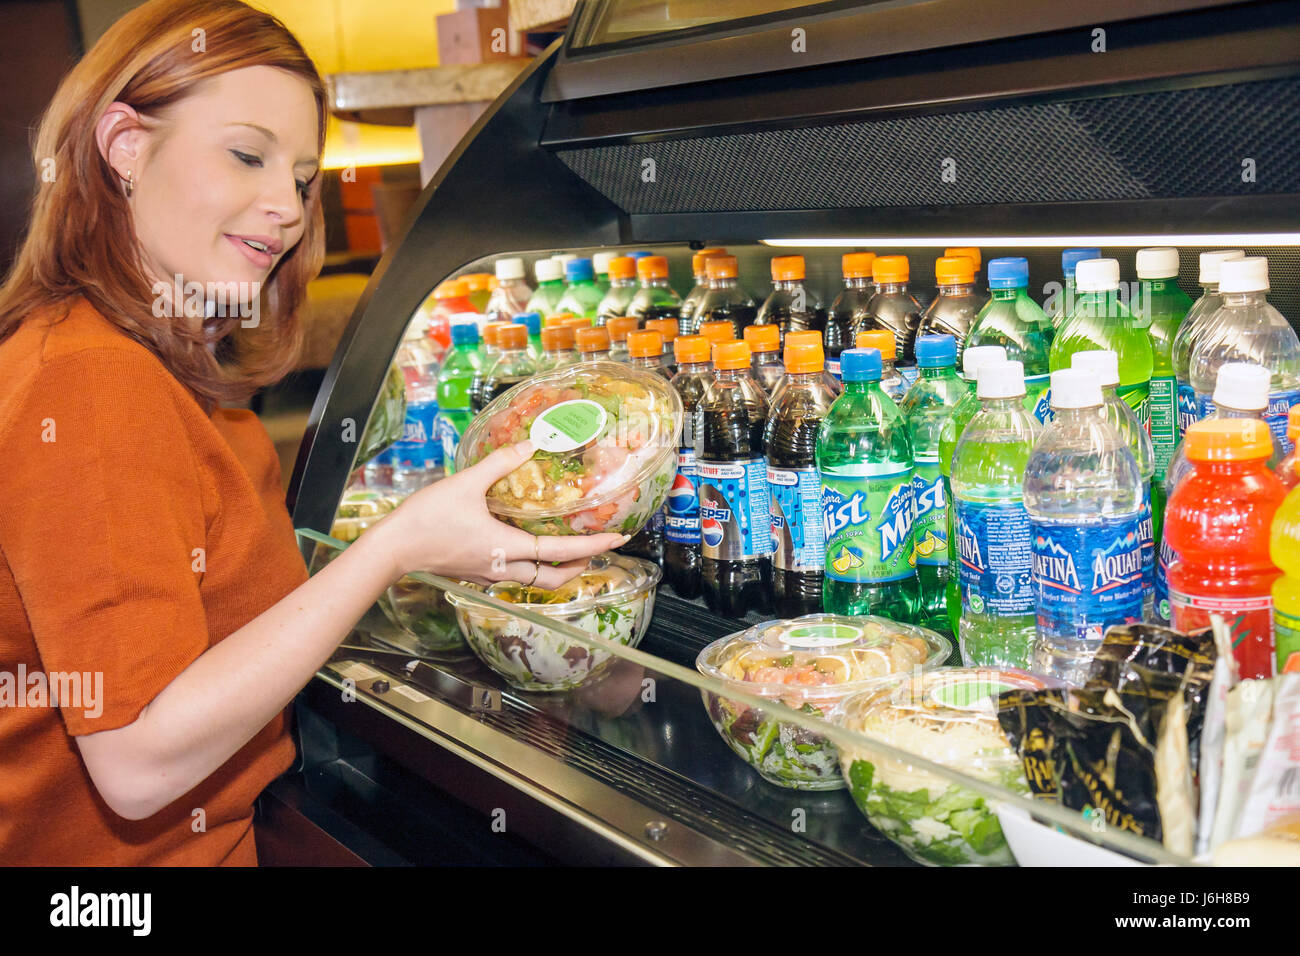 Virginia Roanoke Hyatt Place lobby hotel woman Cherokee Native American selects salad food refrigerated bottles - Stock Image